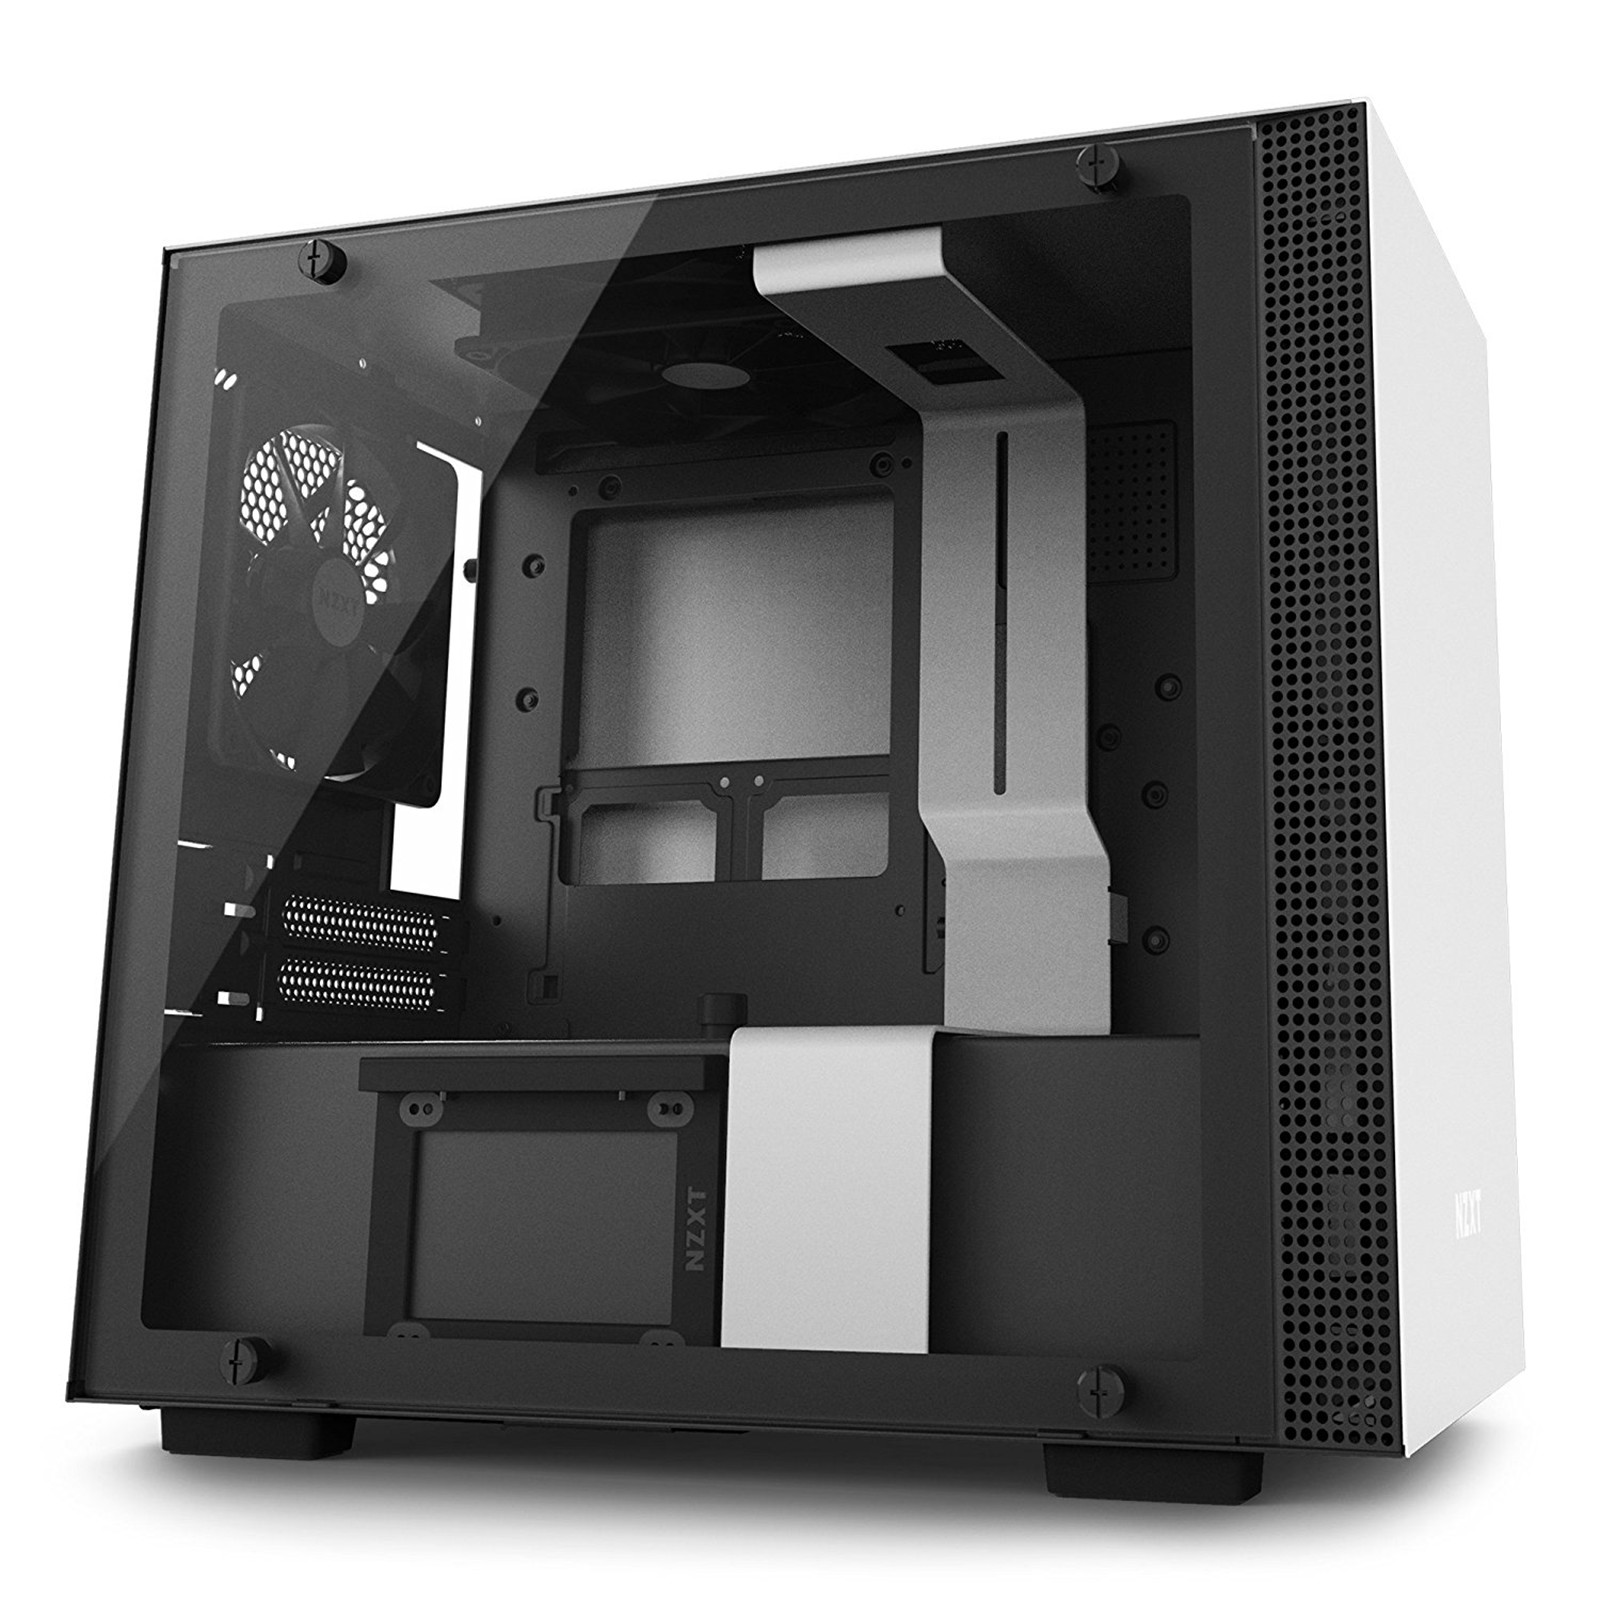 Buy The Nzxt H200i Premium Mini Itx Case Tempered Glass Build In Wiring 3 Pin Cpu Fan Zalman Free Download Diagrams Pictures Cam Rgb Lighting And Fans Matte White